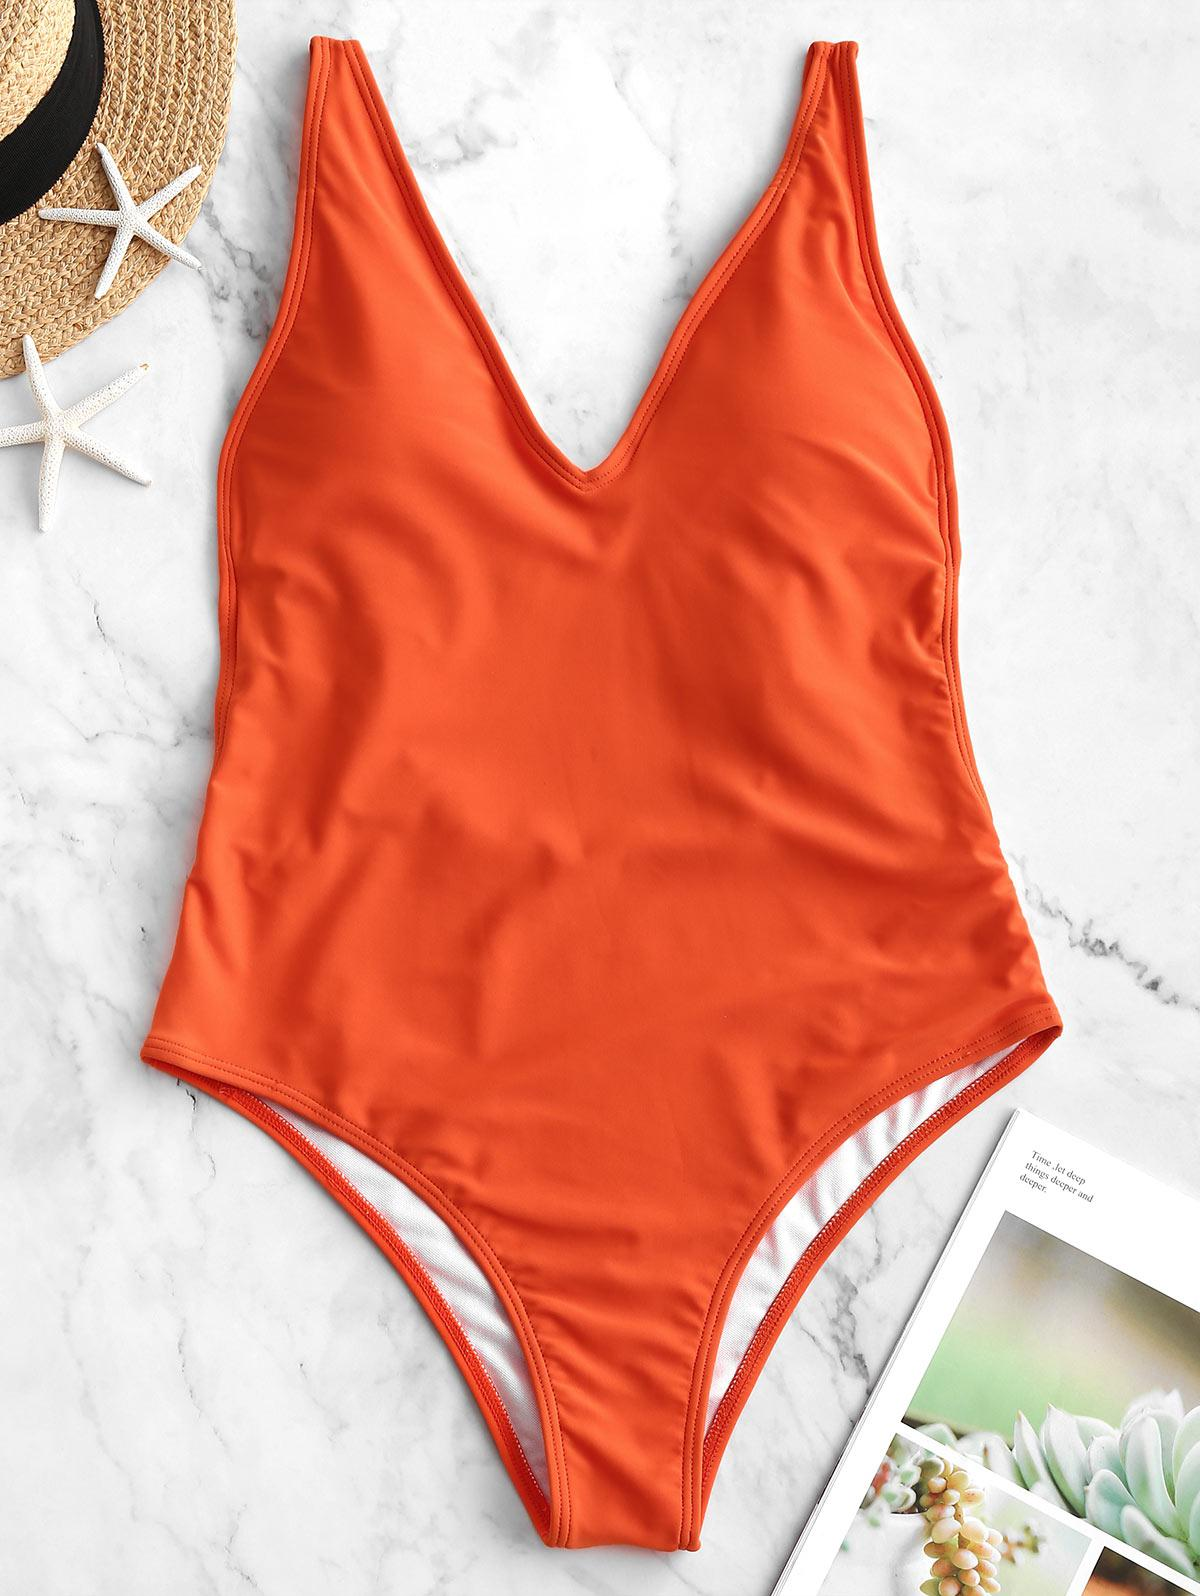 ZAFUL Dual Strap Backless One-piece Swimsuit thumbnail